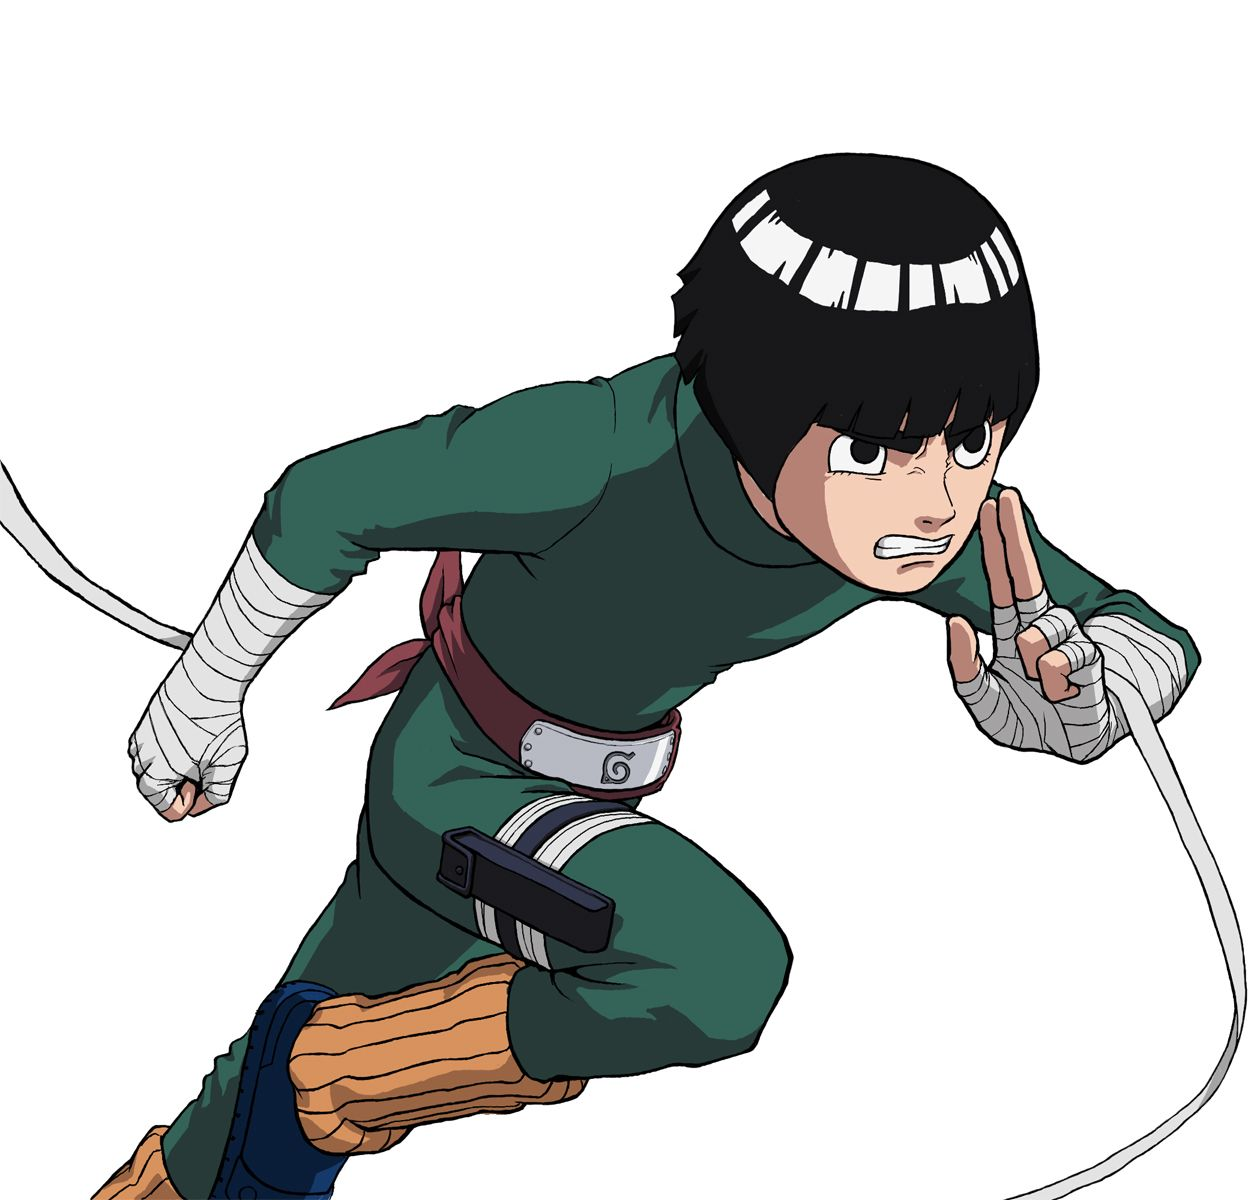 Rock Lee (ロック・リー, Rokku Rī) Is A Major Supporting